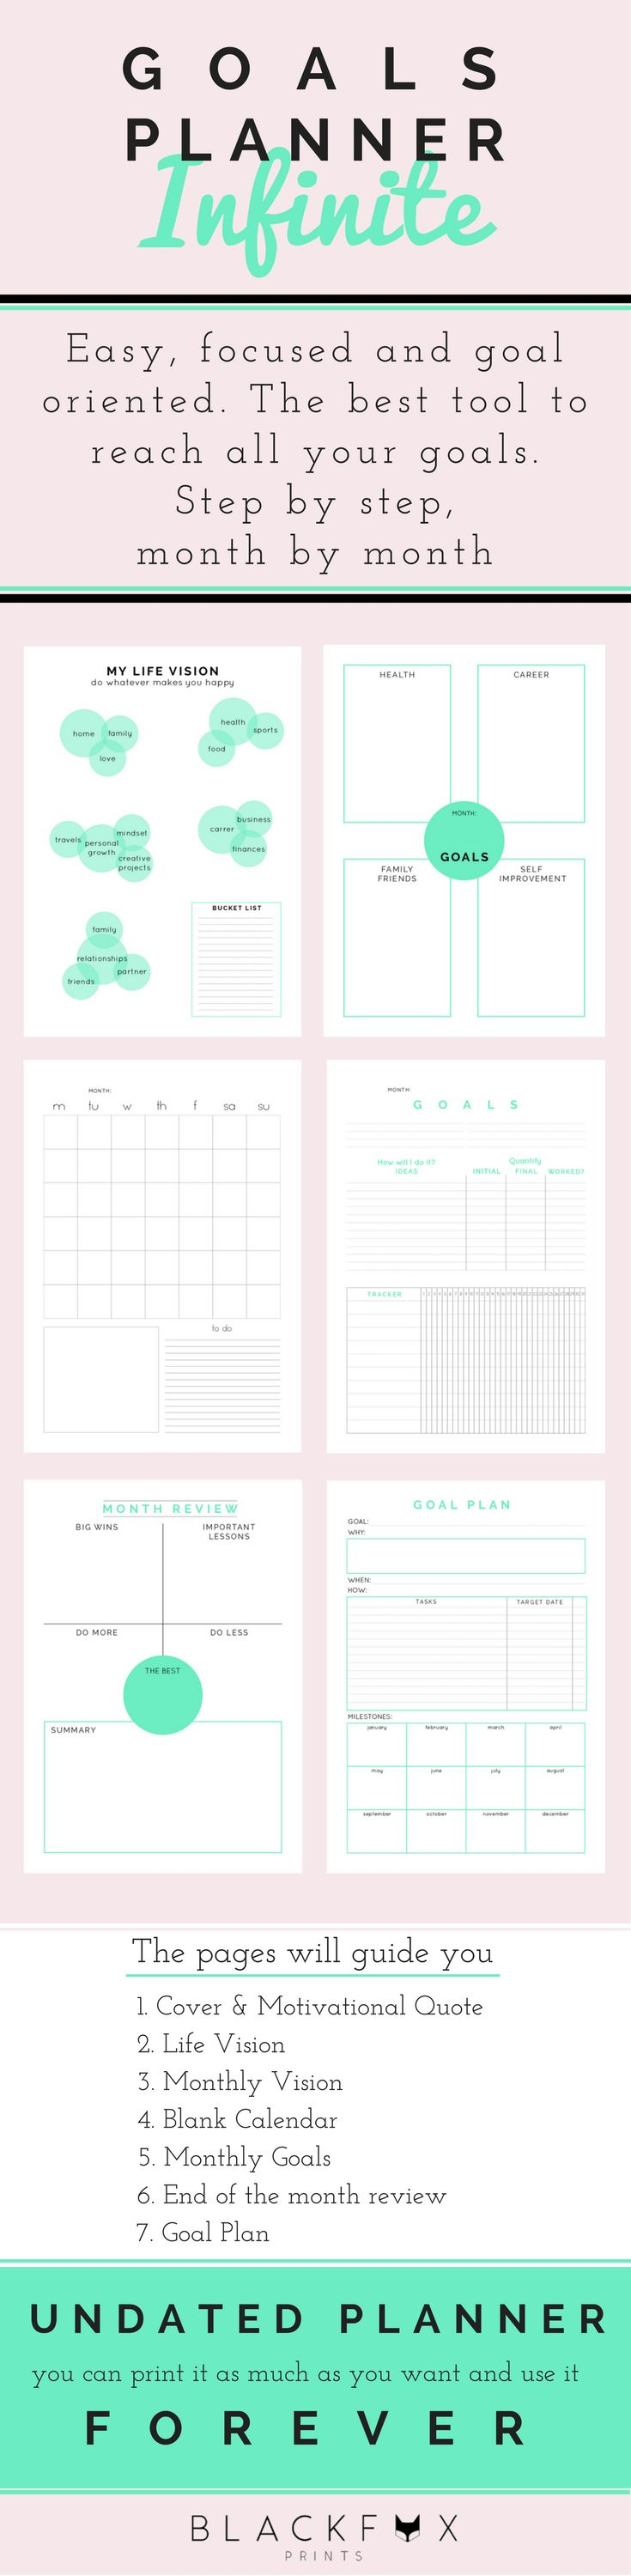 Goals undated planner. Minimal monthly planner with monthly tasks tracker. Easy, focused and goal oriented. The best tool to achieve your life goals. It is printable and undated, you can print it as much as you want and use it forever. Clean and minimal planner. The focus of the planner is the content, your vision, your goals, your ideas and the plan you will follow to achieve them.  This planner will help you reach all your goals, step by step, month by month.